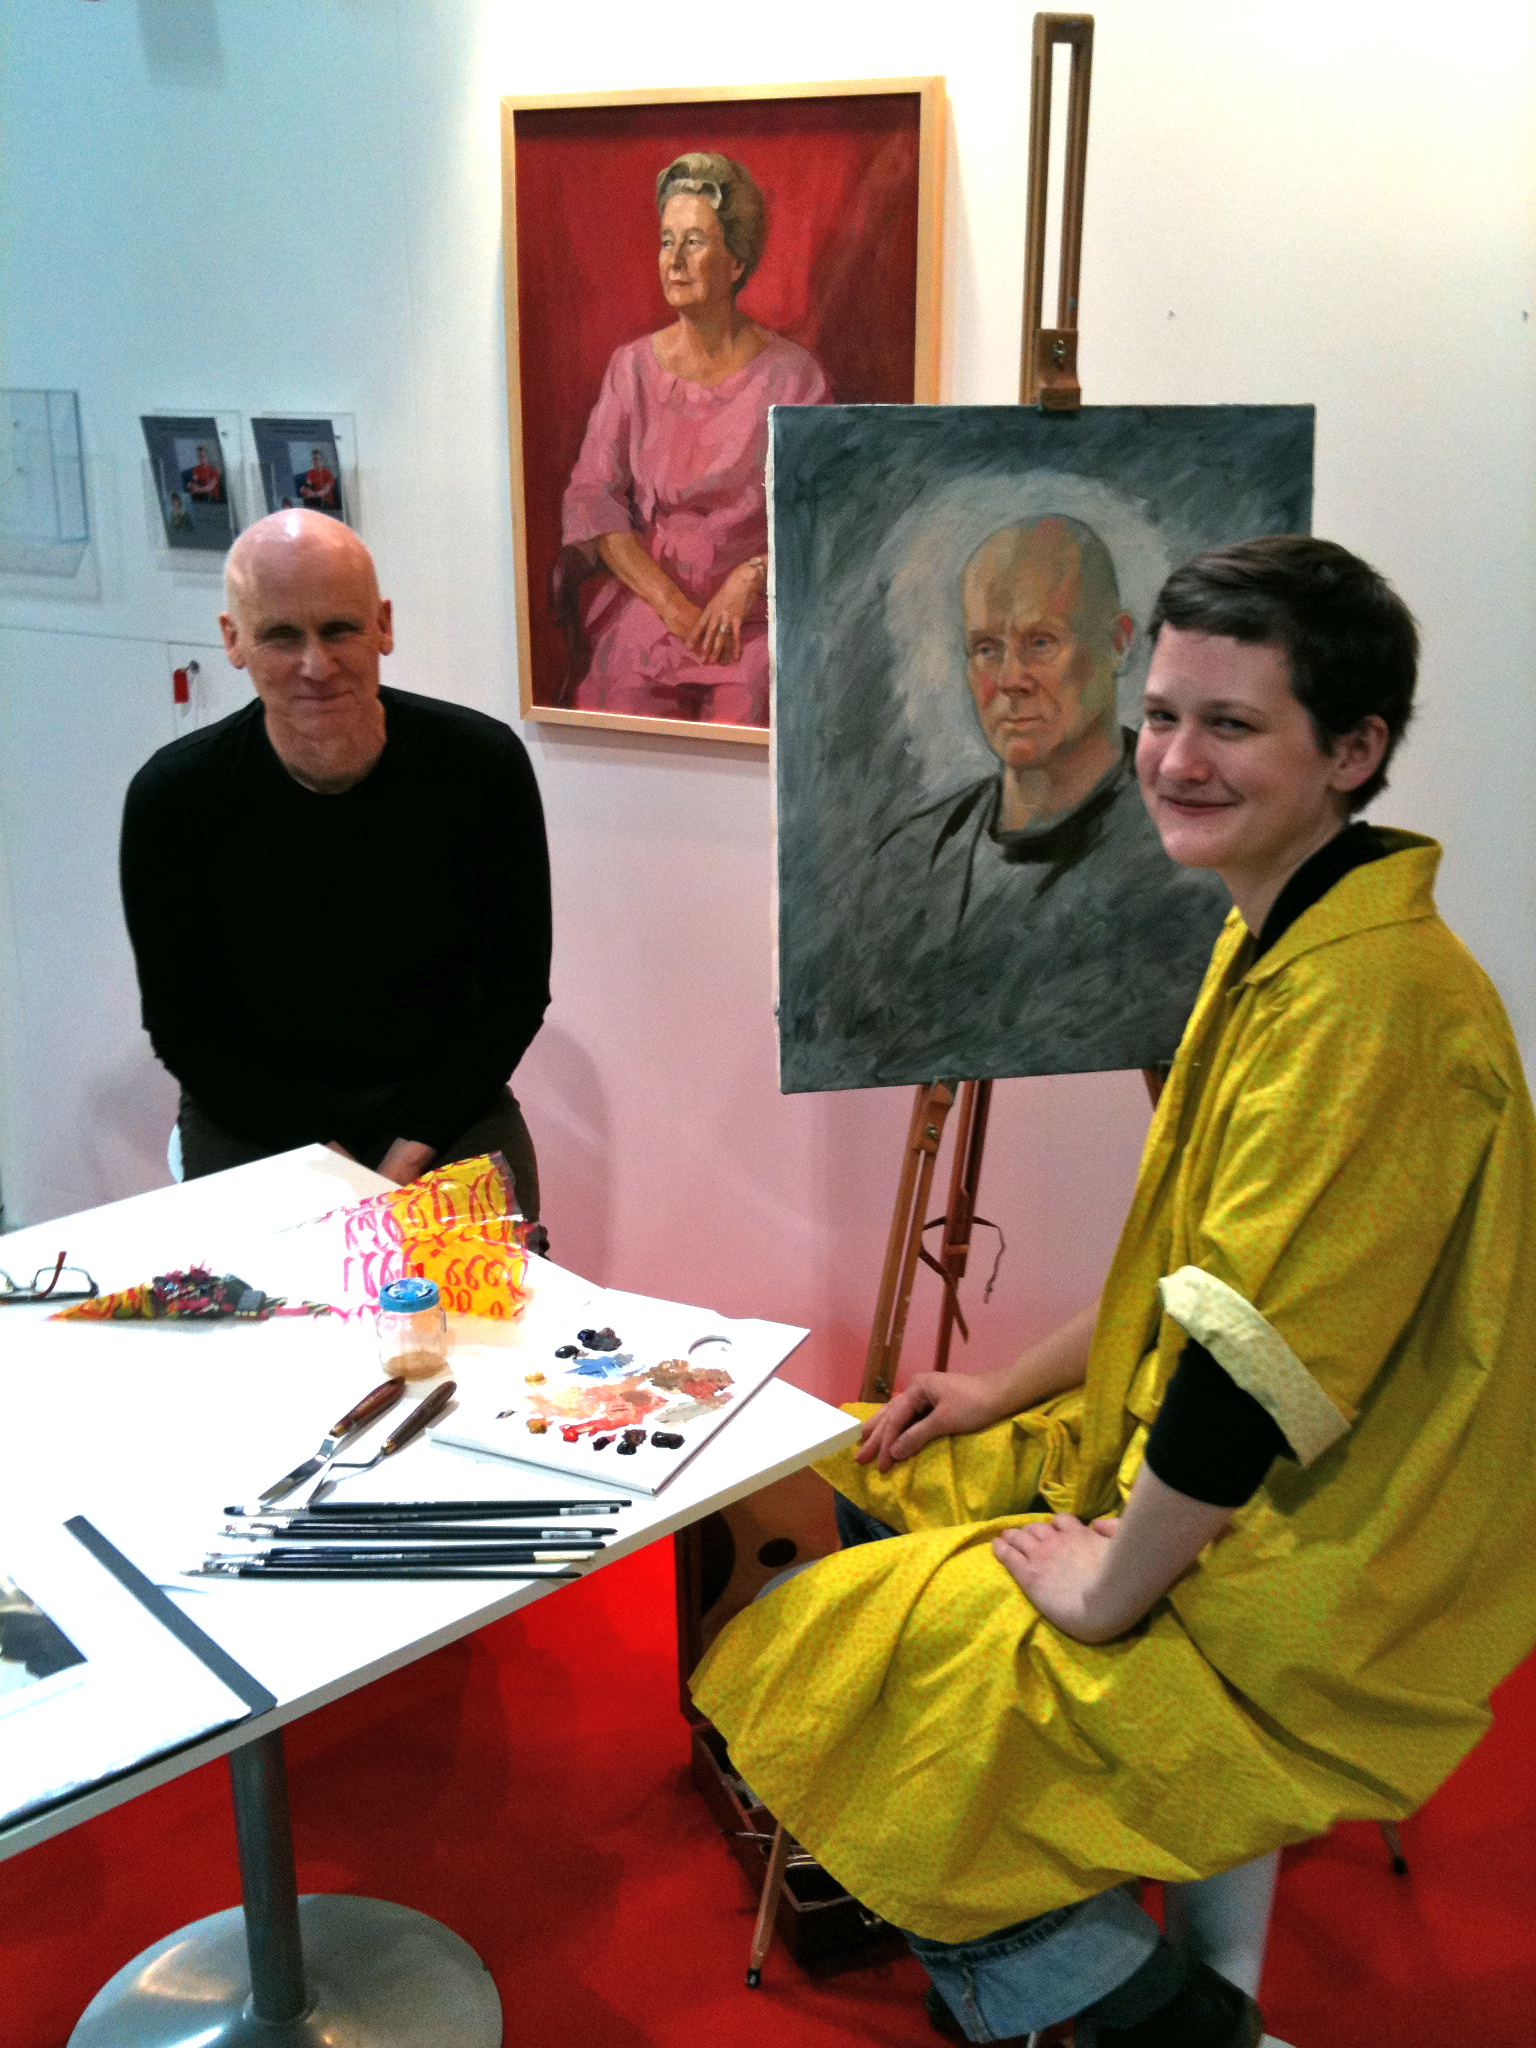 Portrait Demonstration at the Art360 Booth